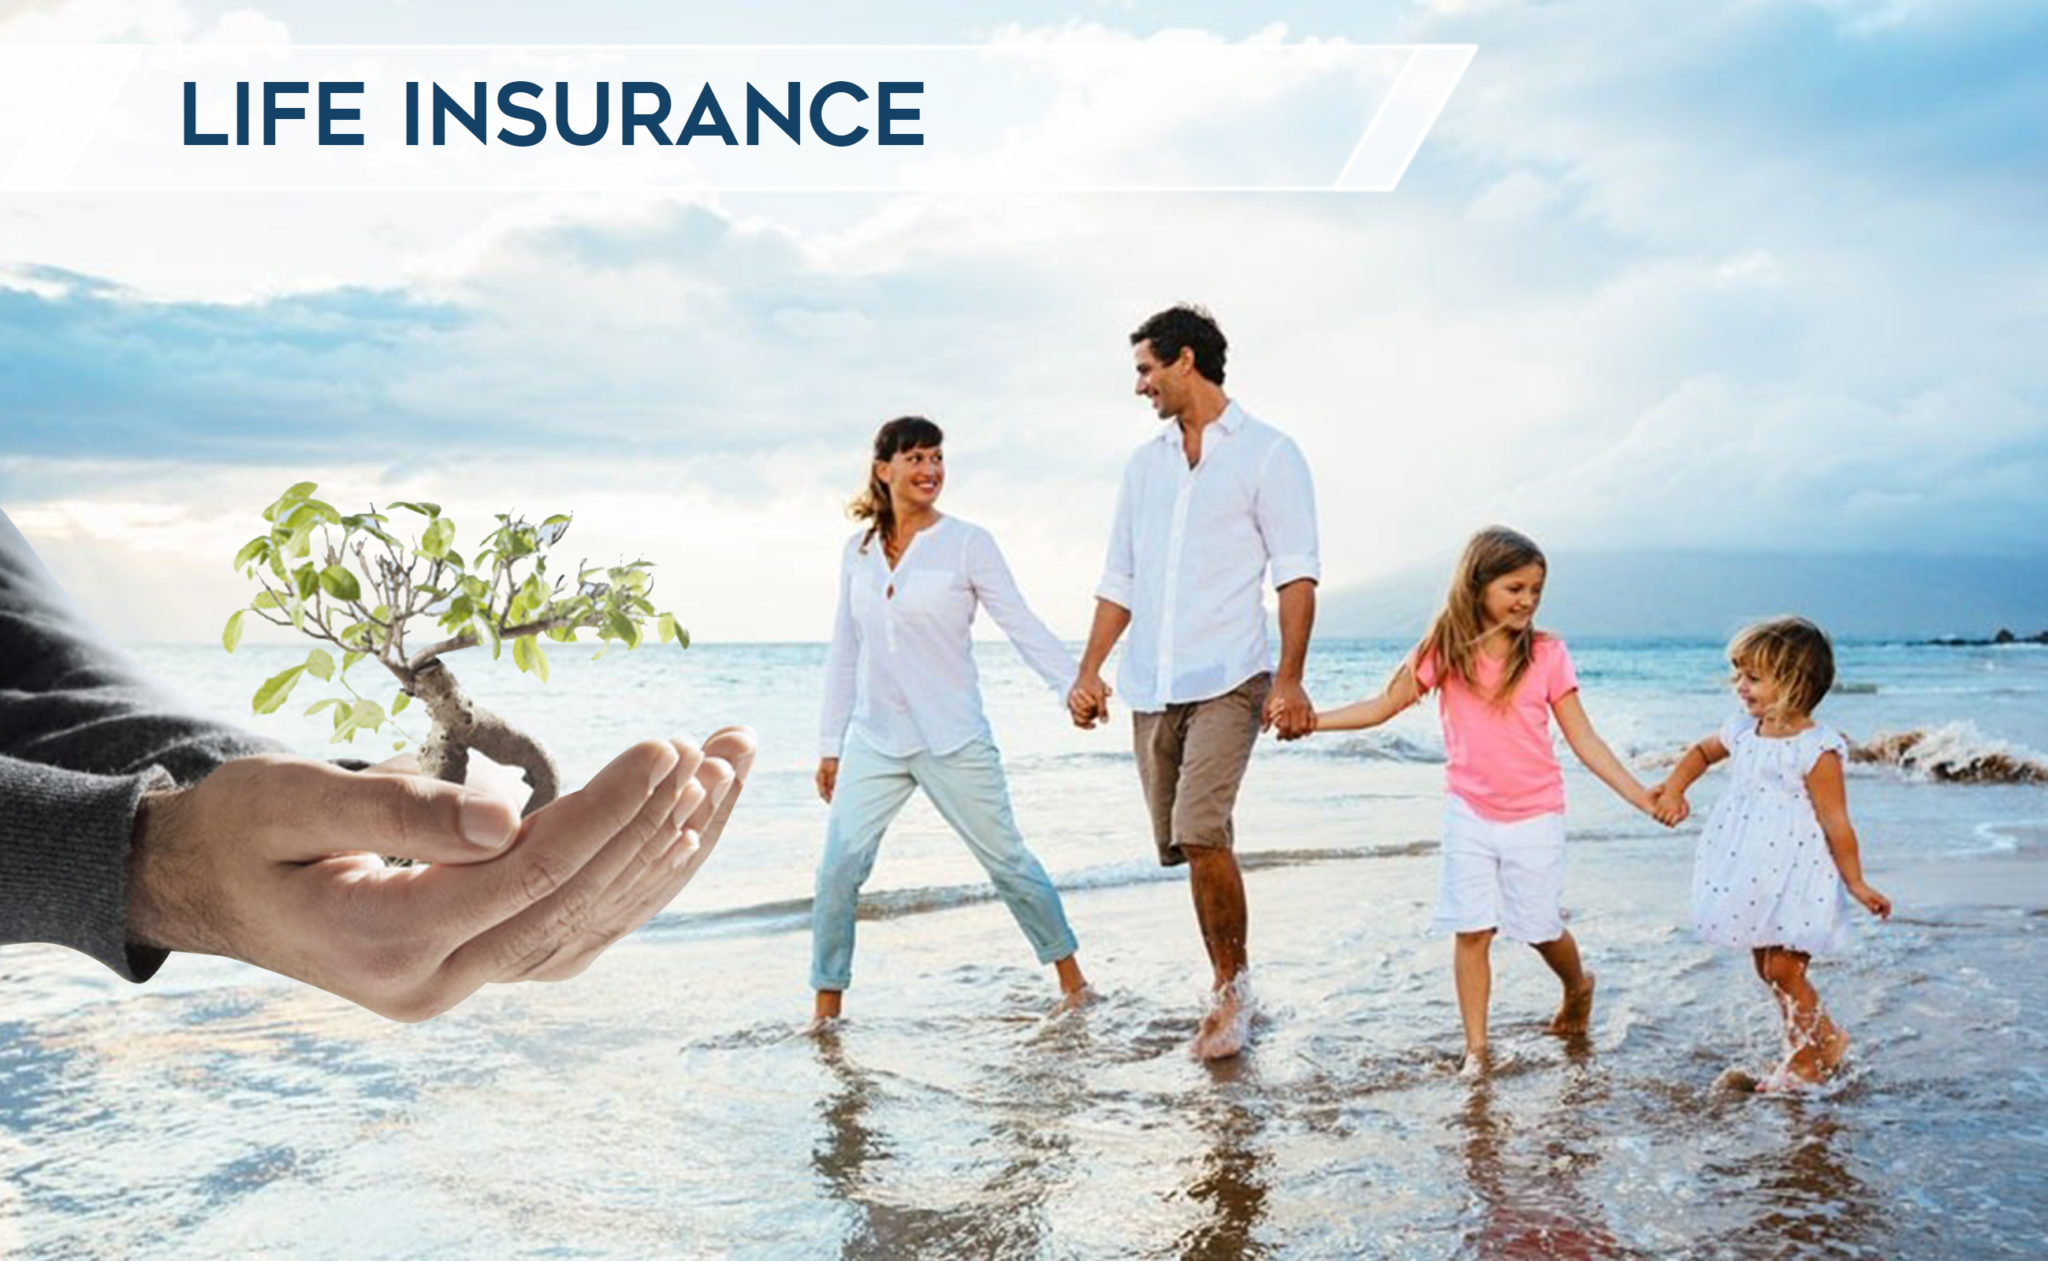 Florida Life Insurance Quotes  Diverse Insurance Group. Want To Divorce My Wife Act Tutoring Programs. Best Termite Control Company. Secondary Education Programs. Paralegal Help With Divorce Papers. Motorsport Sponsorship Proposal Example. Car Accident Concussion Bls Software Engineer. Graphic Design Online Degree. Telephone Conferencing Services